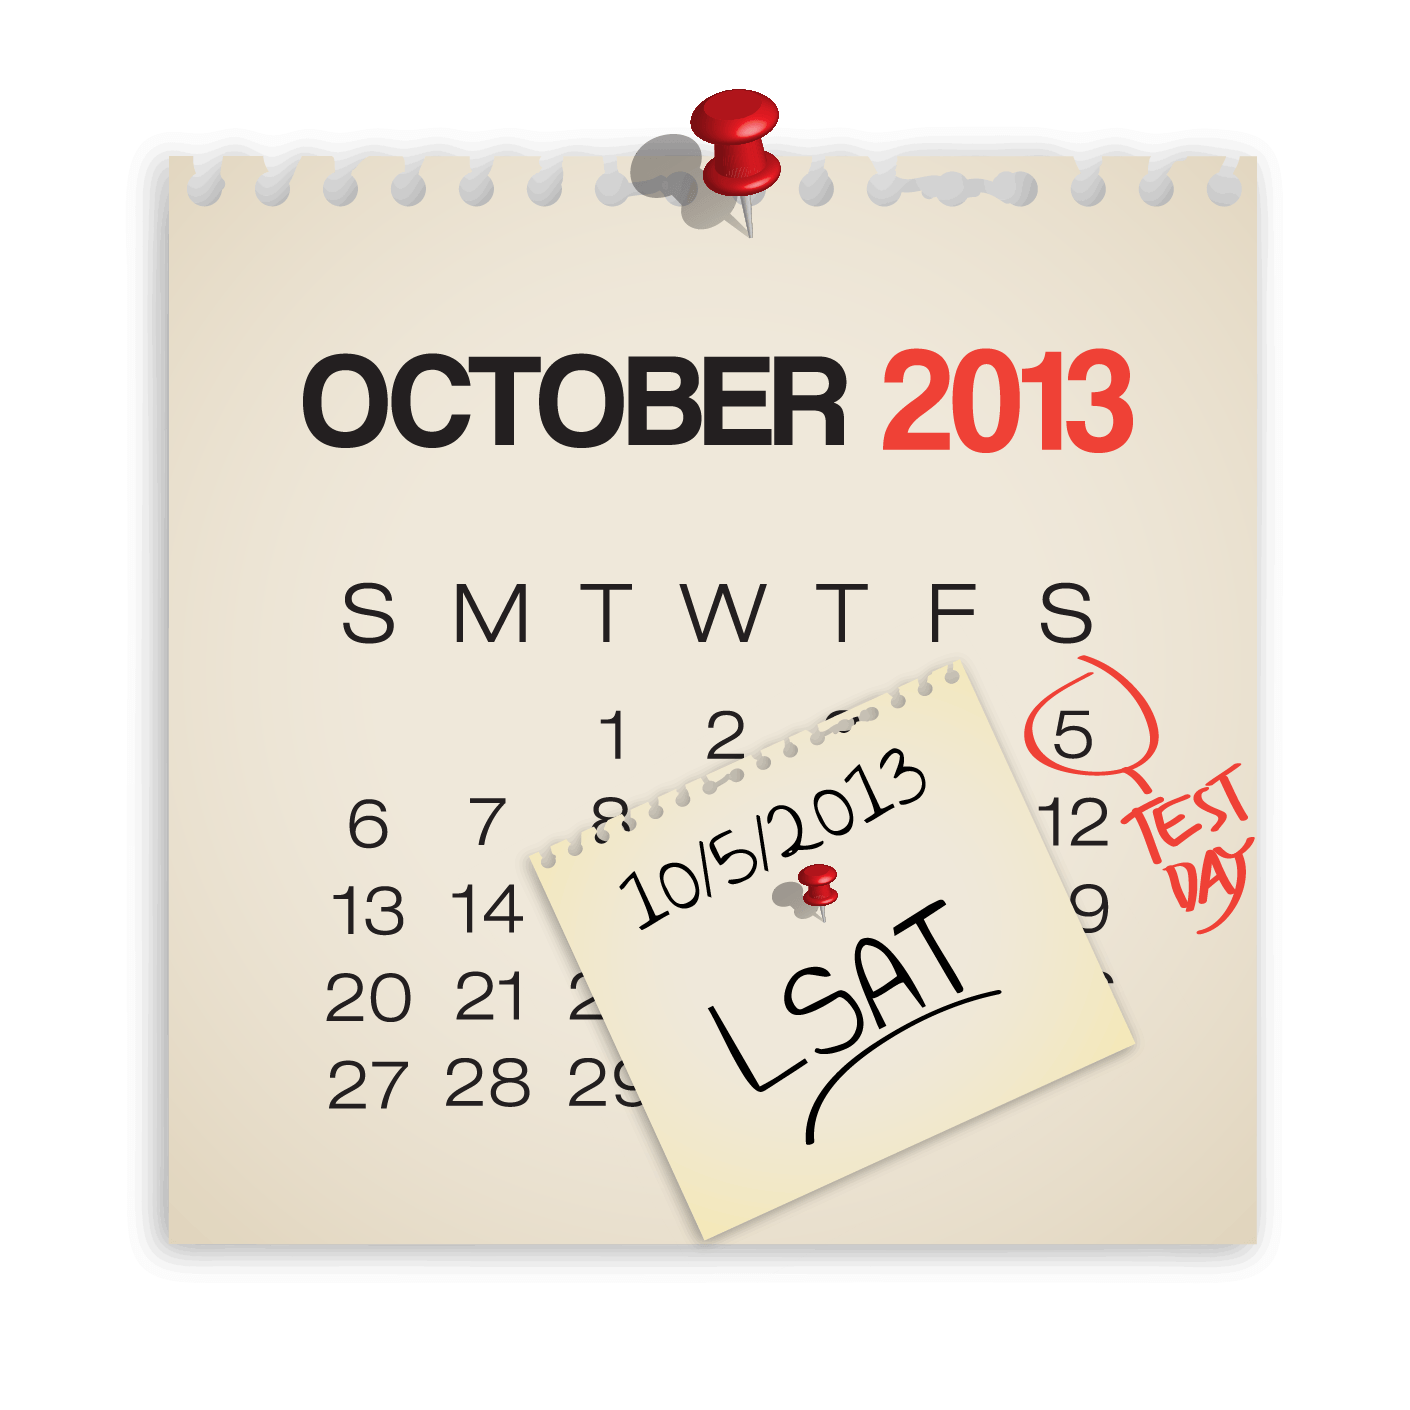 October lsat scores released today 10282013 vent here lawschooli october lsat scores released today 10282013 vent here malvernweather Image collections